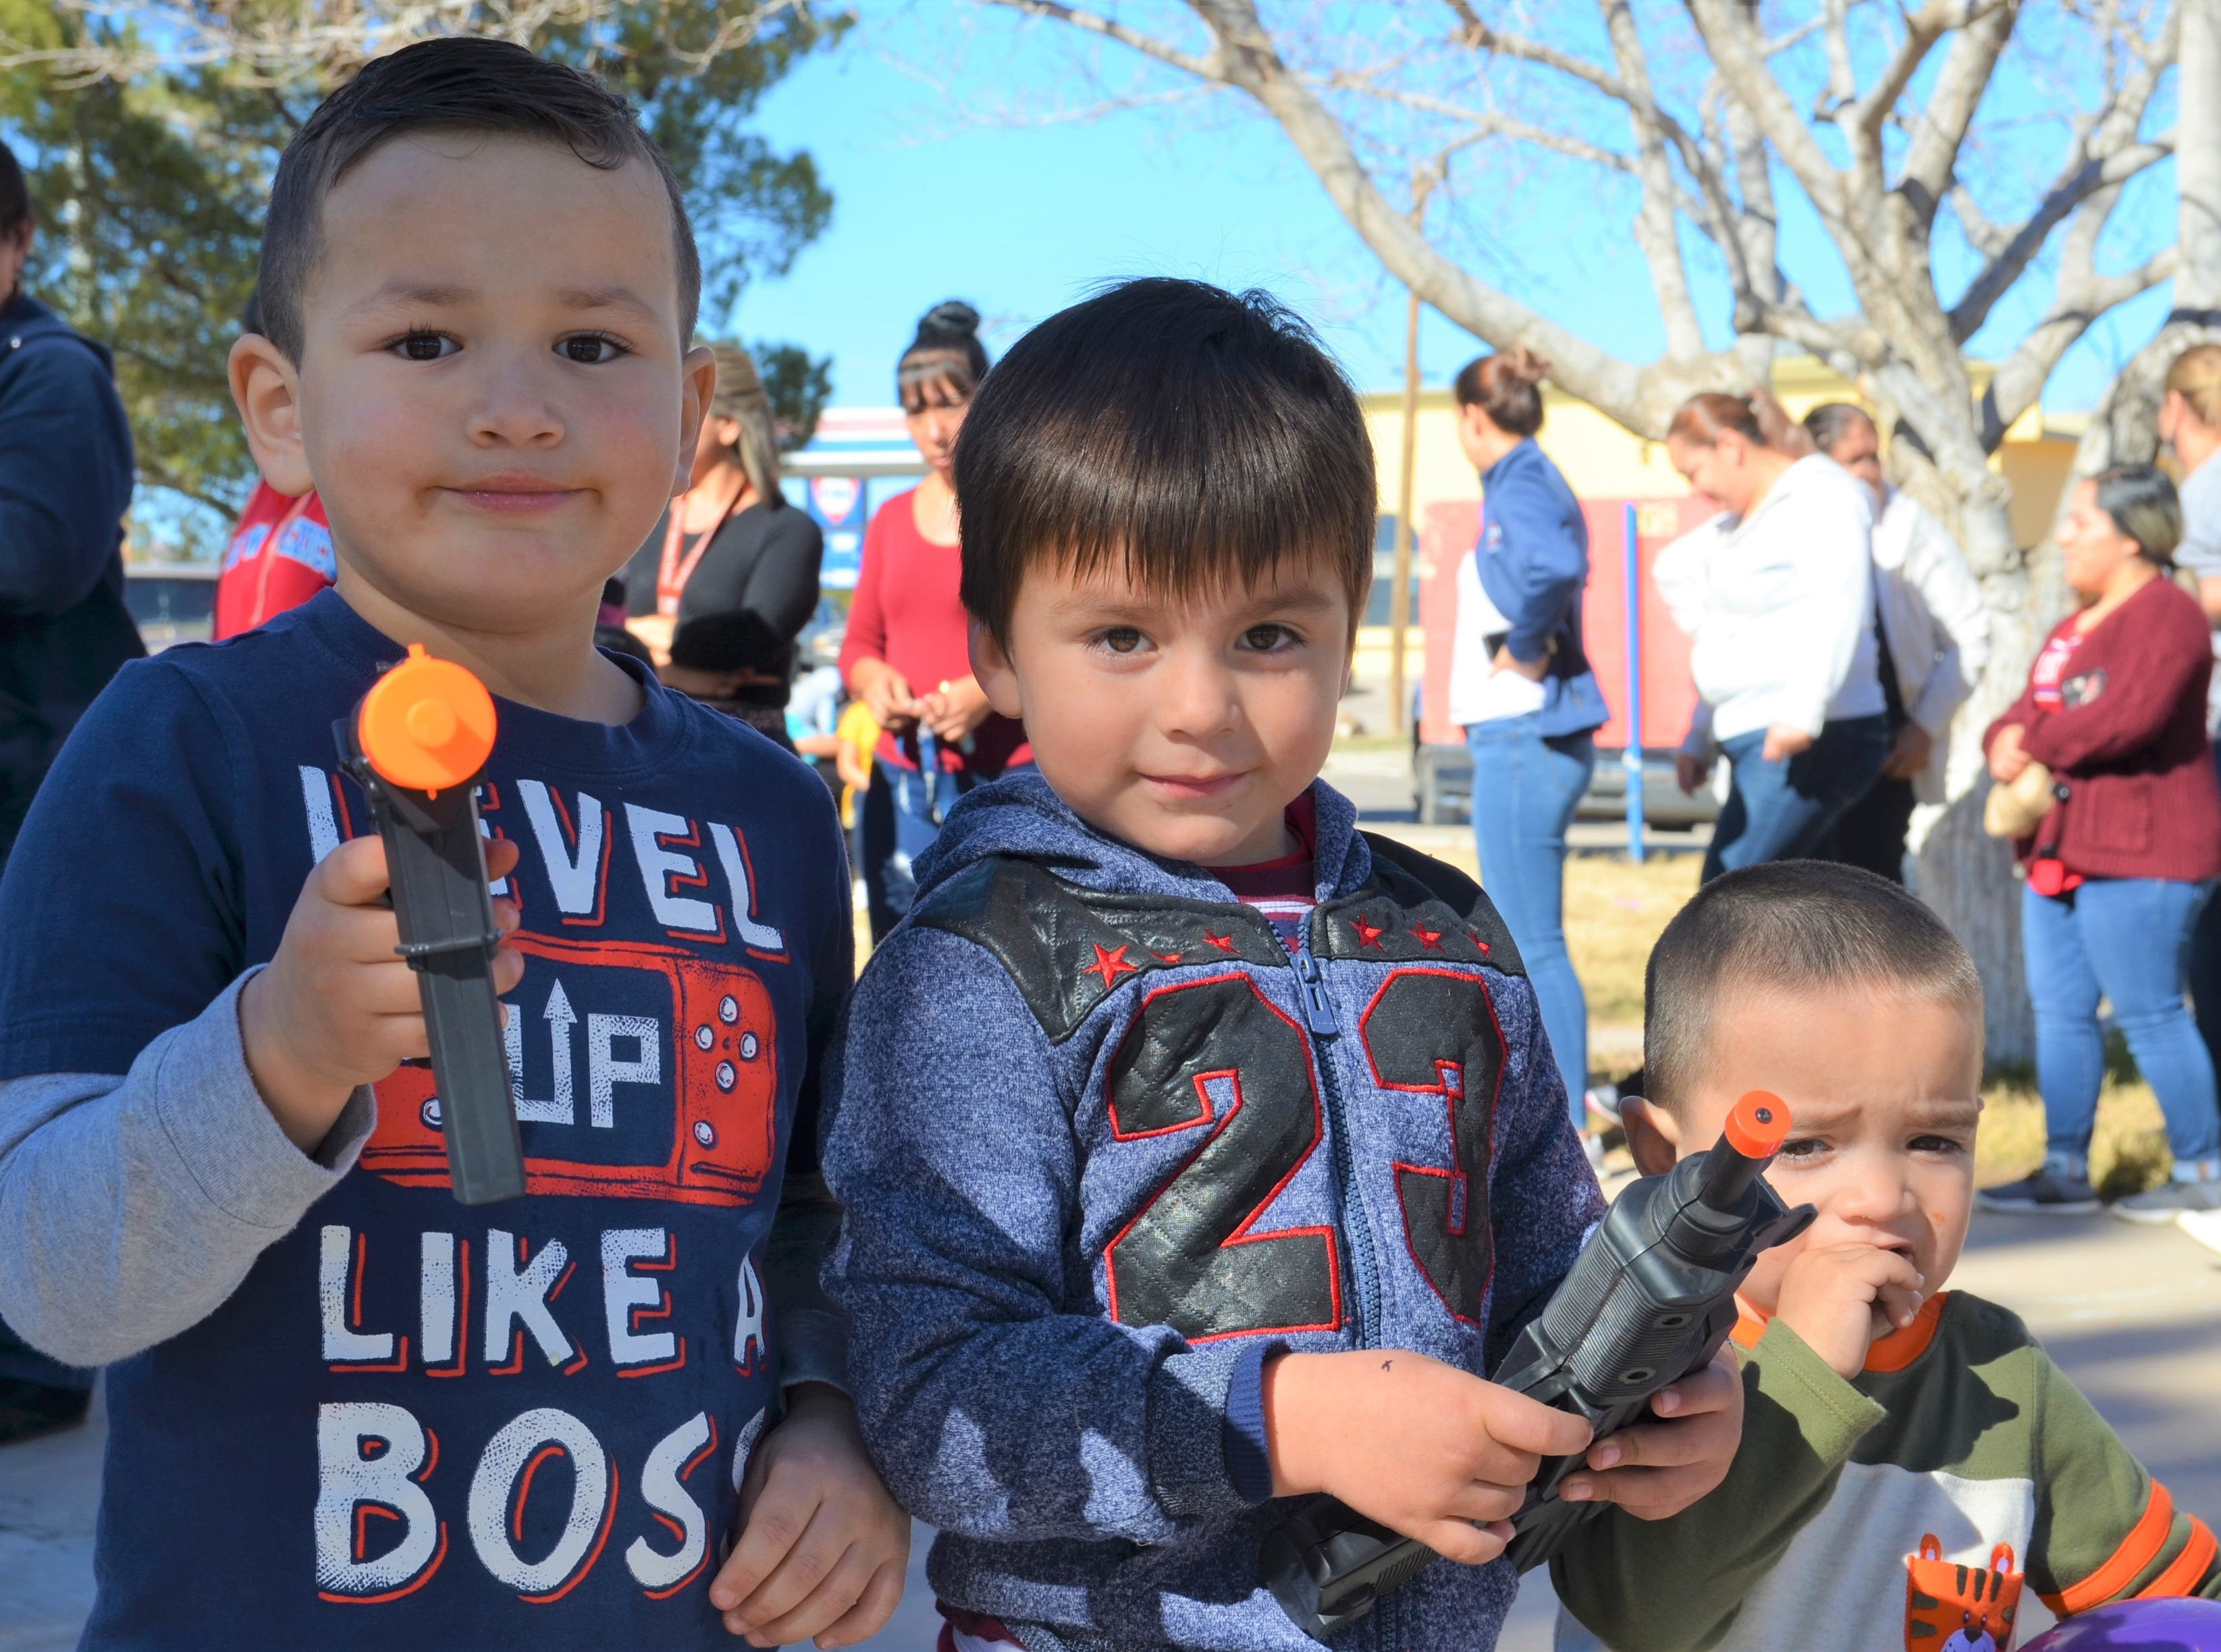 From left, Sebastian Ramos, 4, and Marco Antonio Ramos, 4 received toy guns while brother Gael Ramos, 2, received a purple ball.